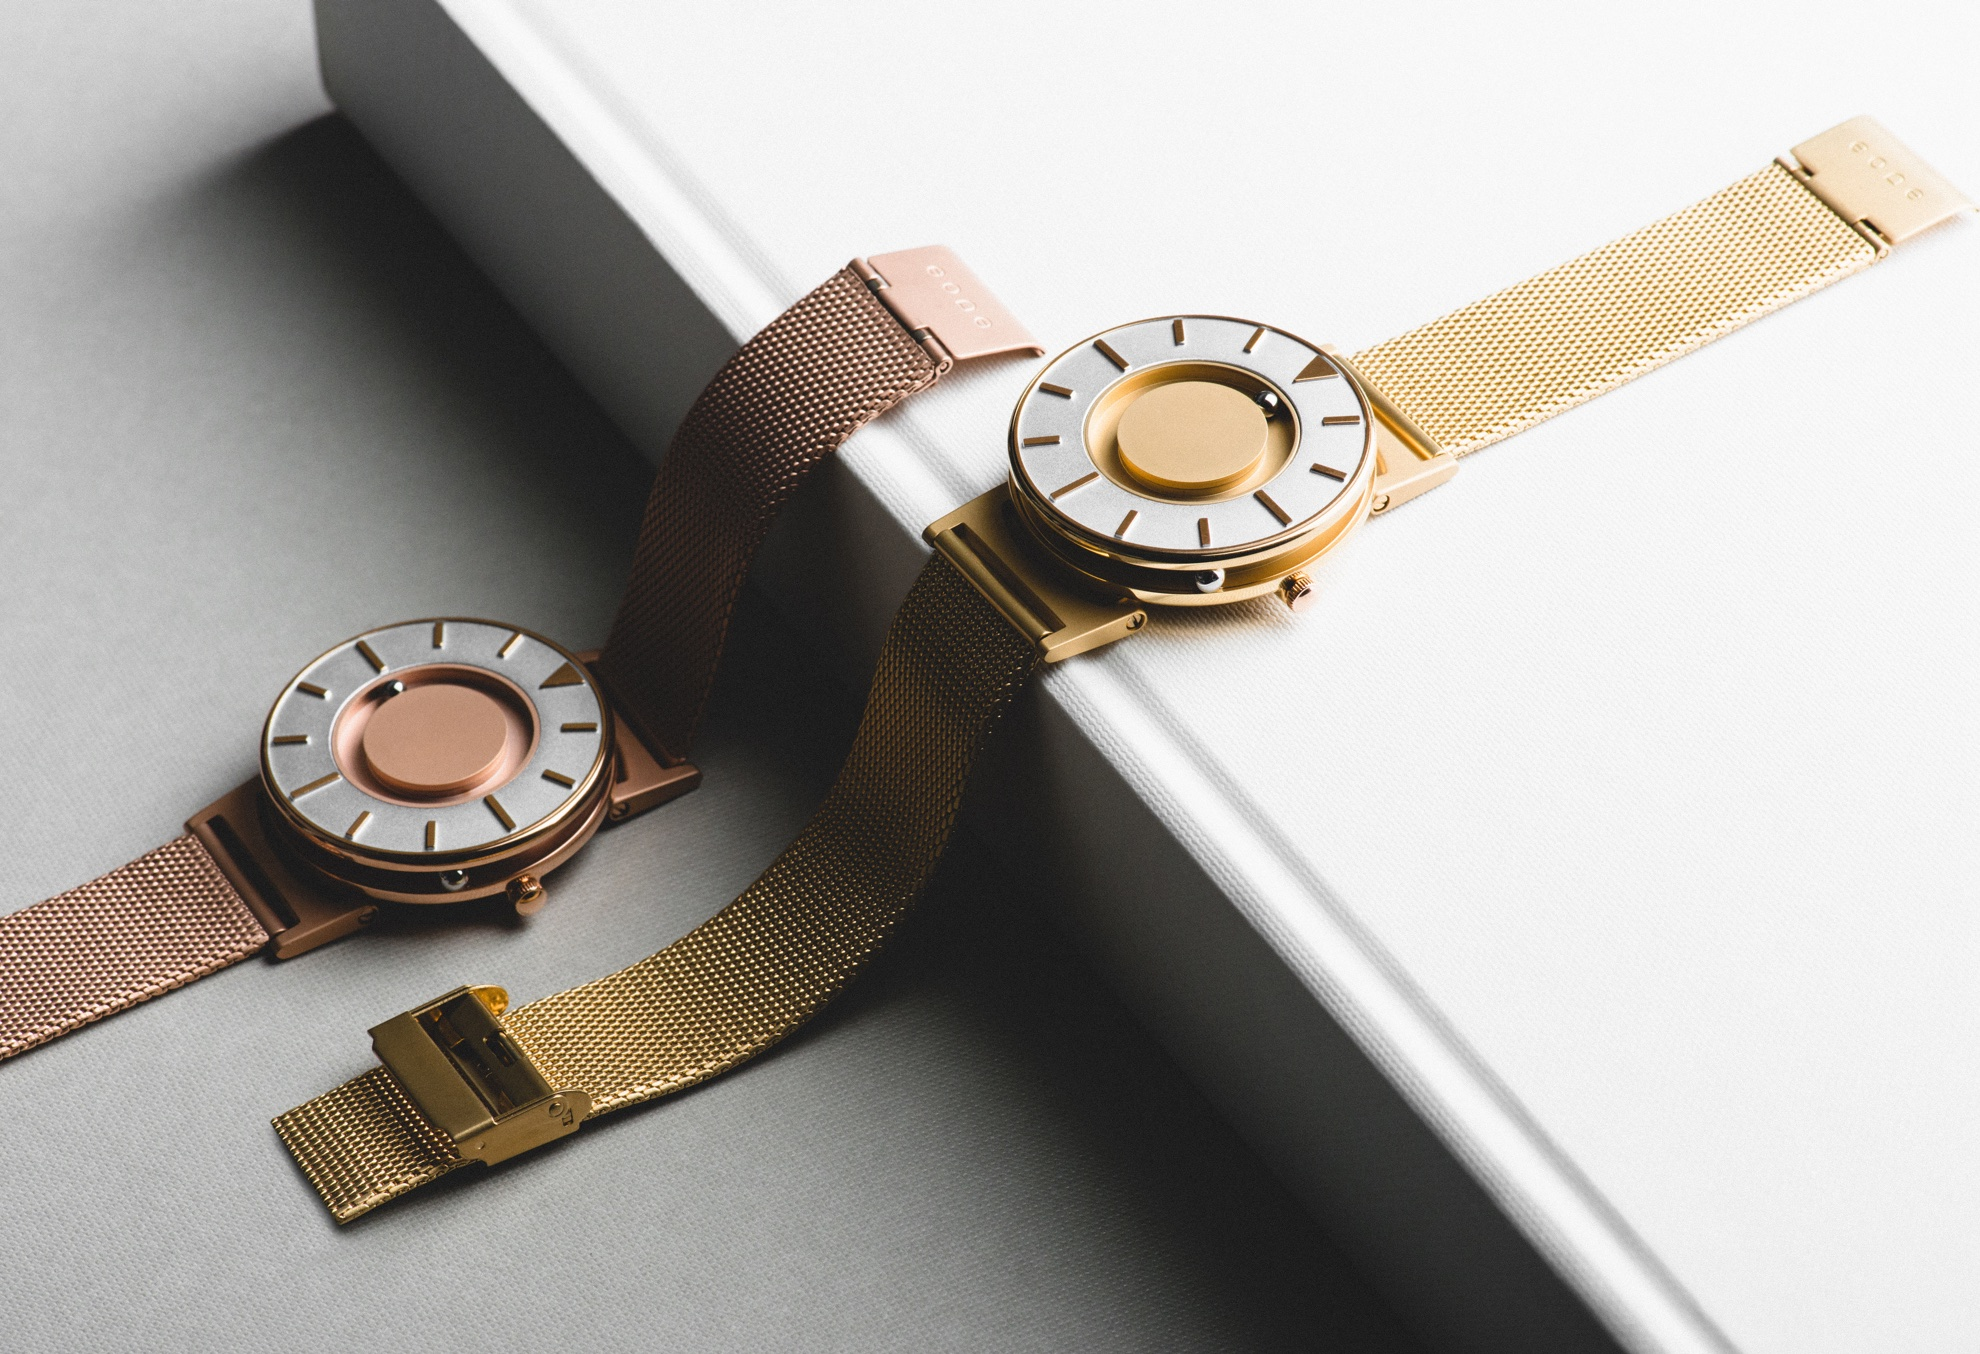 Two models of the Eone watch are draped across a book, one is metallic gold and the other is rose gold.